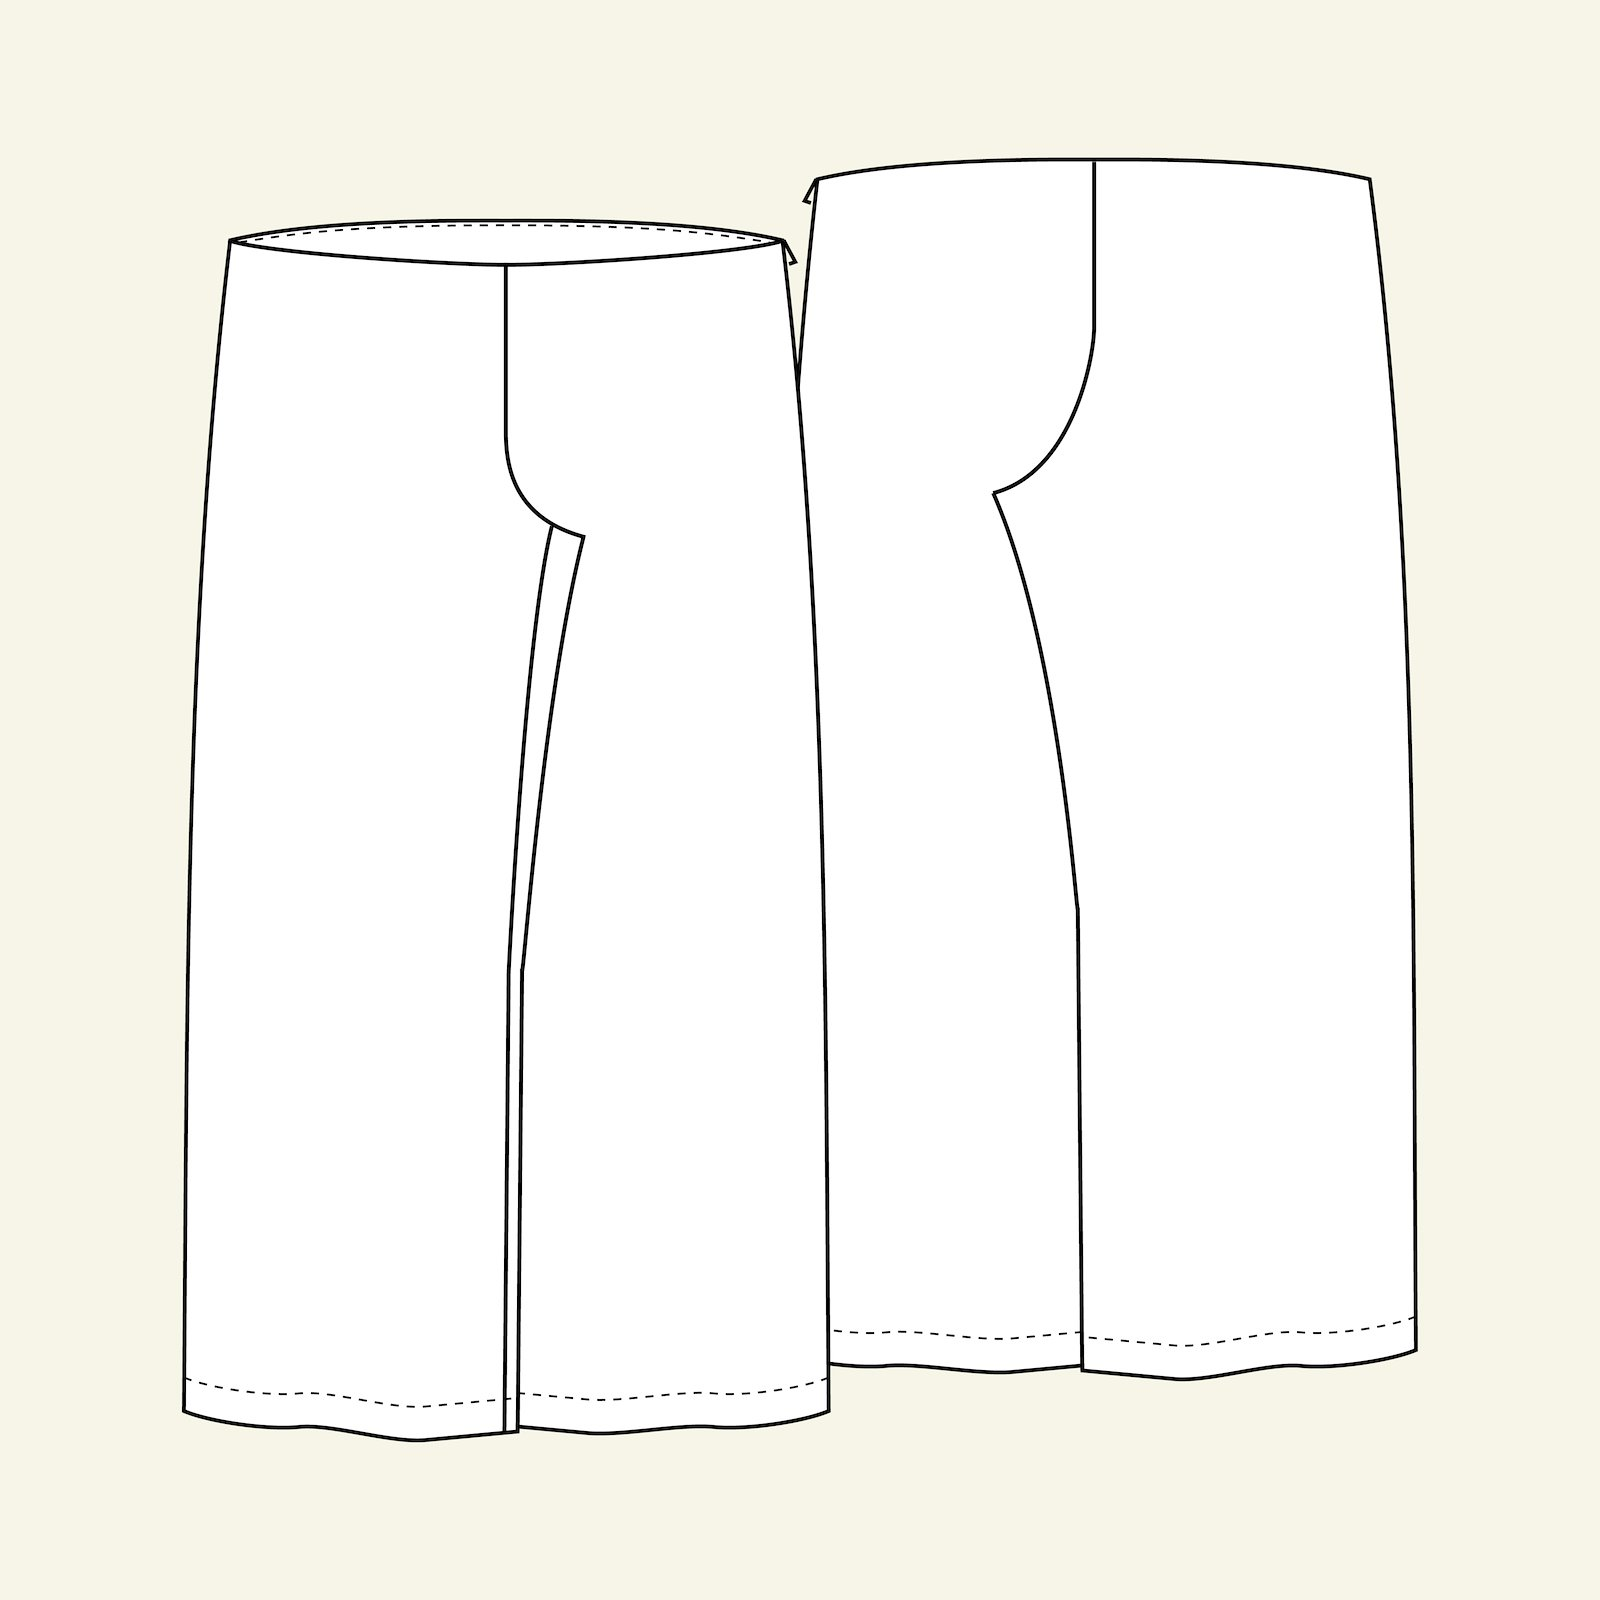 Boot cut trousers, 54/26 p70005_pack